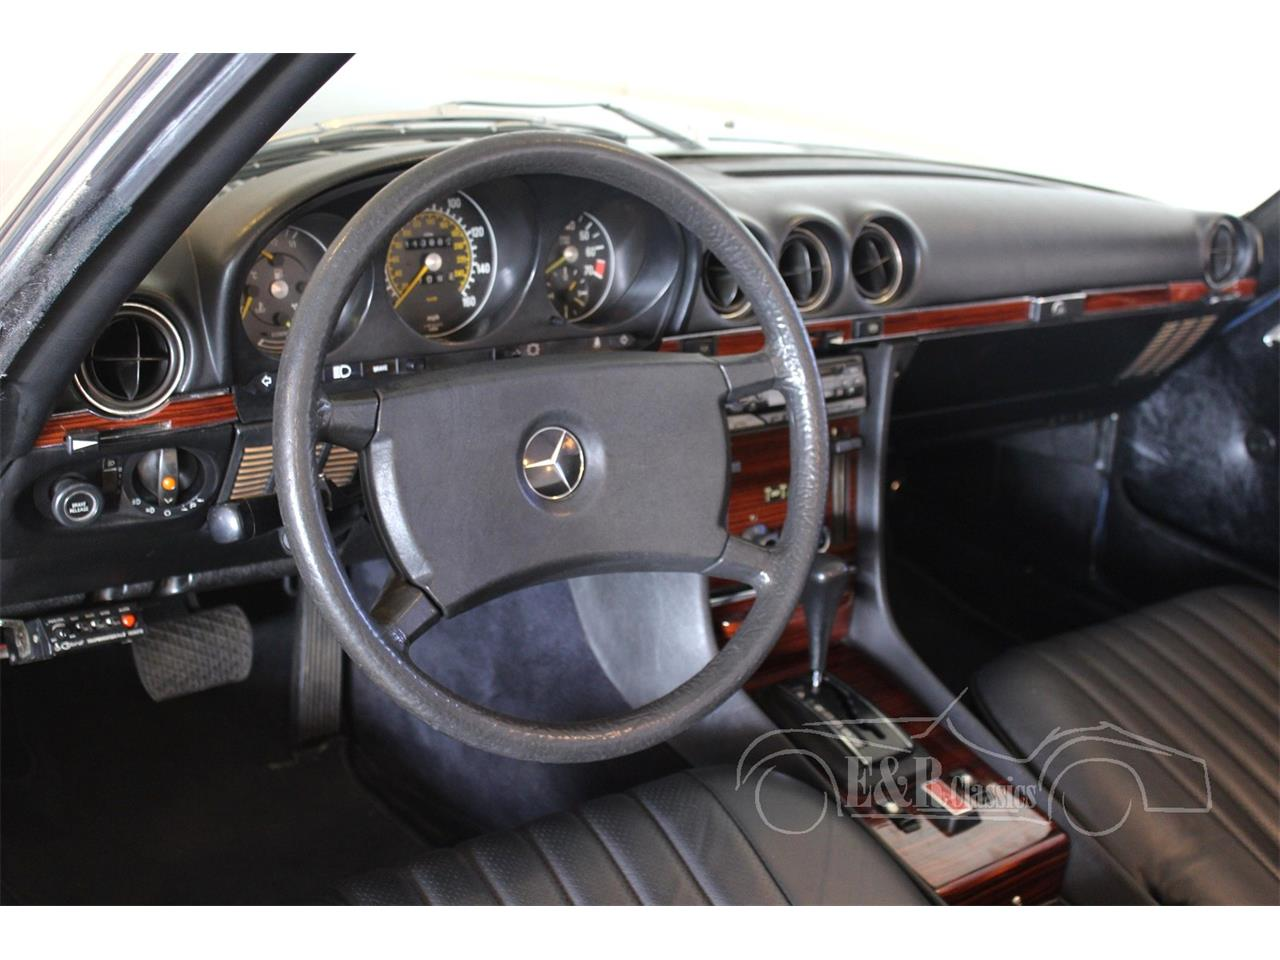 Large Picture of '80 Mercedes-Benz 280SL located in Noord-Brabant - $36,350.00 - MO8R